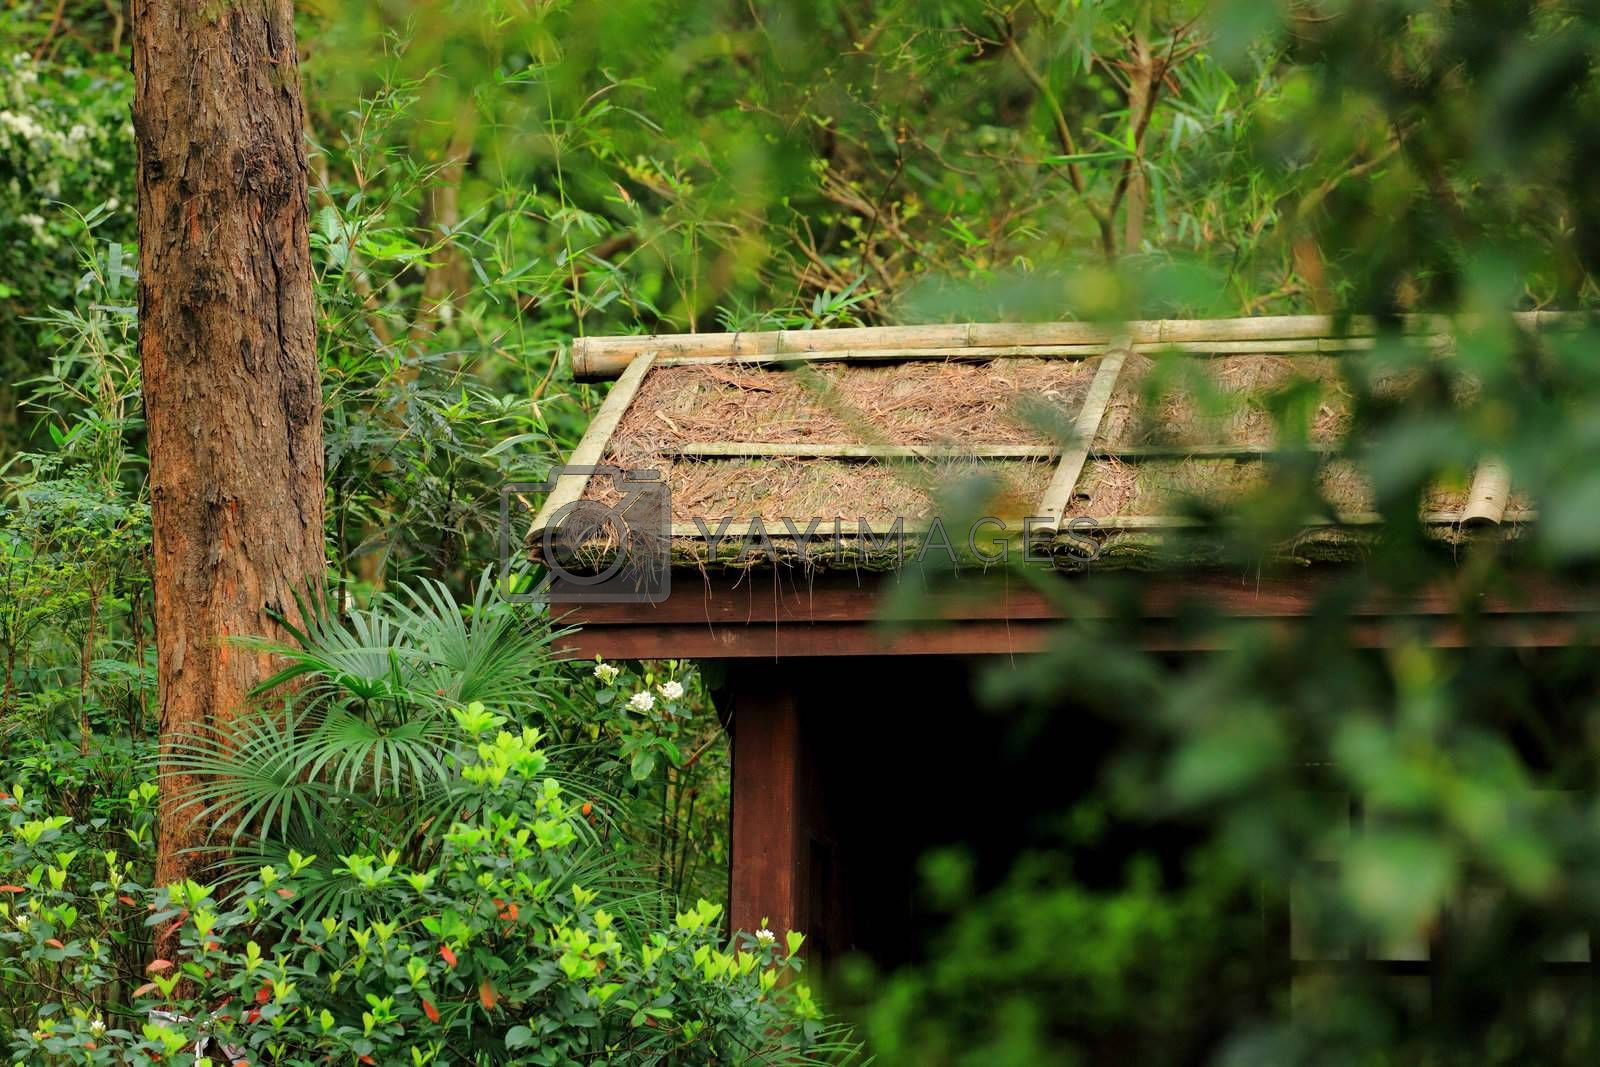 Royalty free image of hut in wood by leungchopan